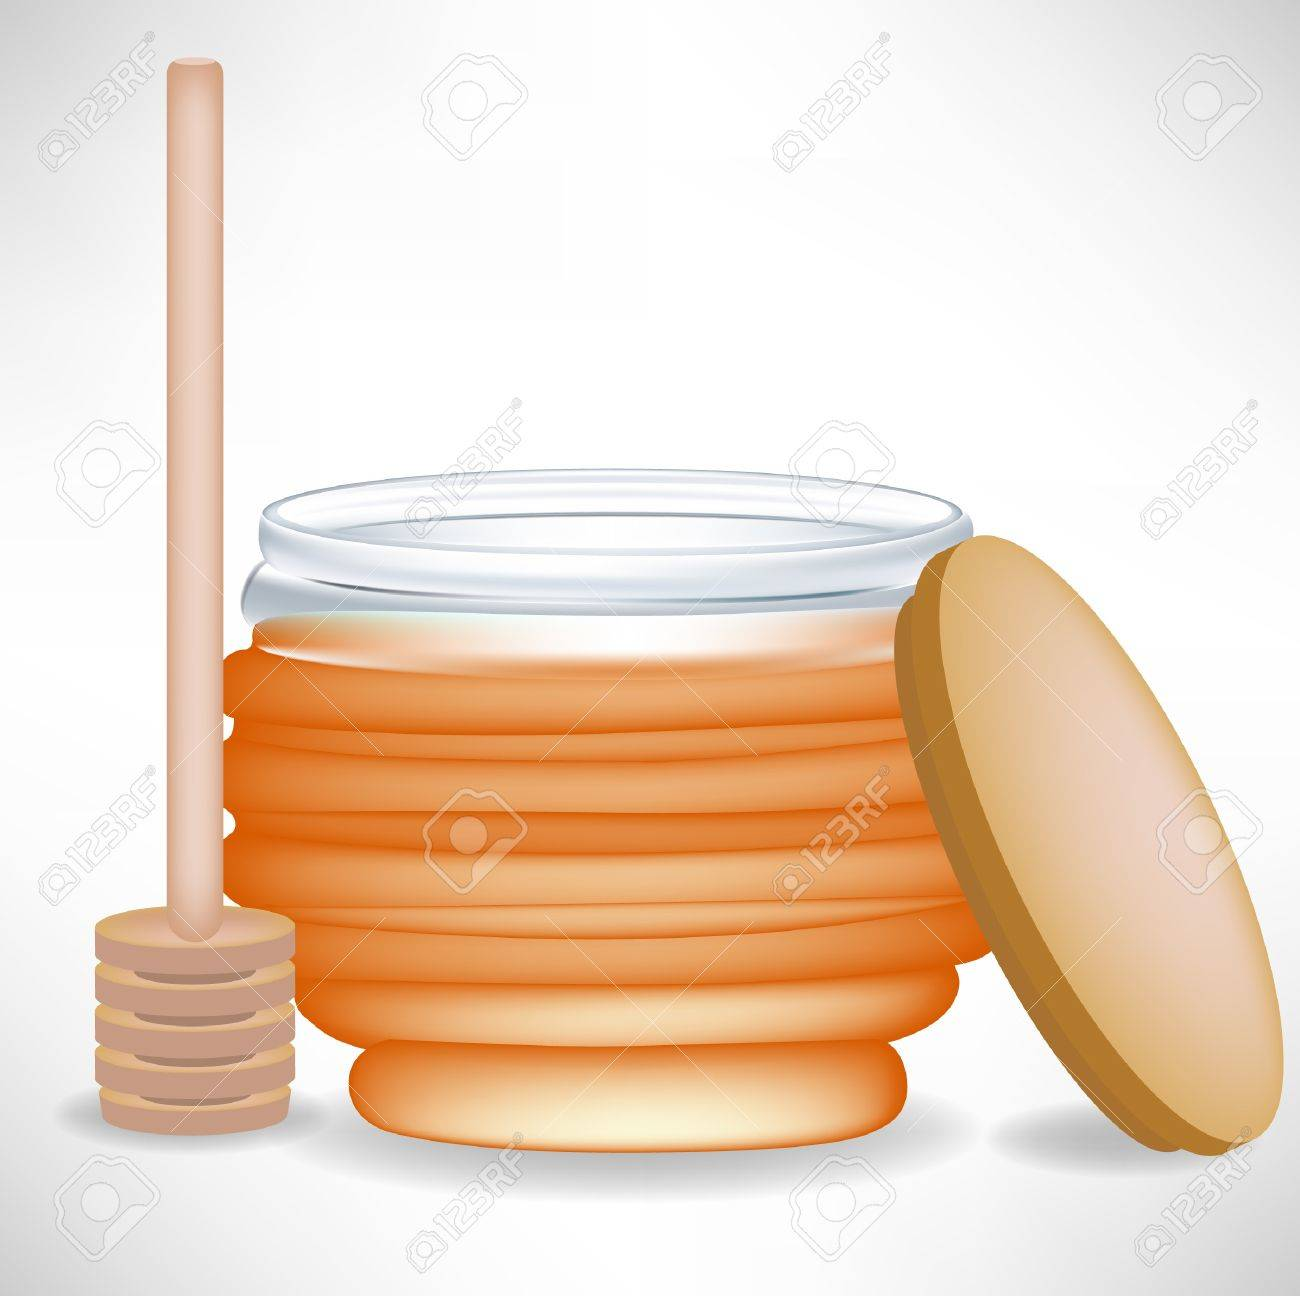 honey jar with wooden drizzle and cap Stock Vector - 10851854